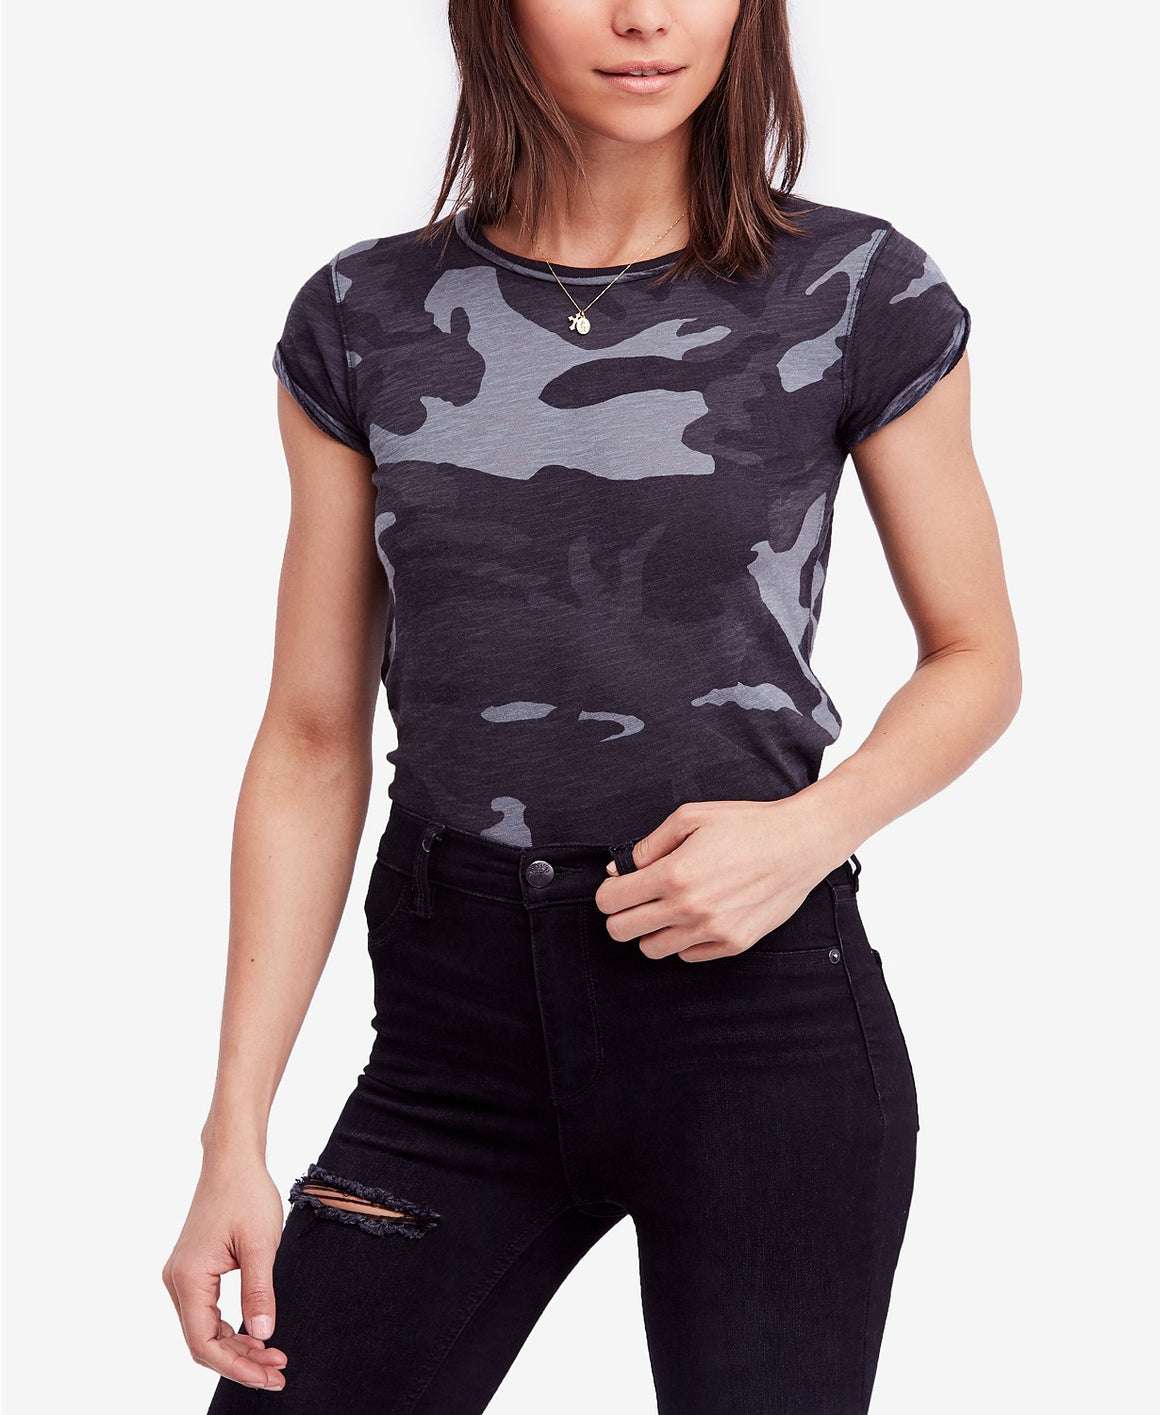 Free People Clare Printed Tee